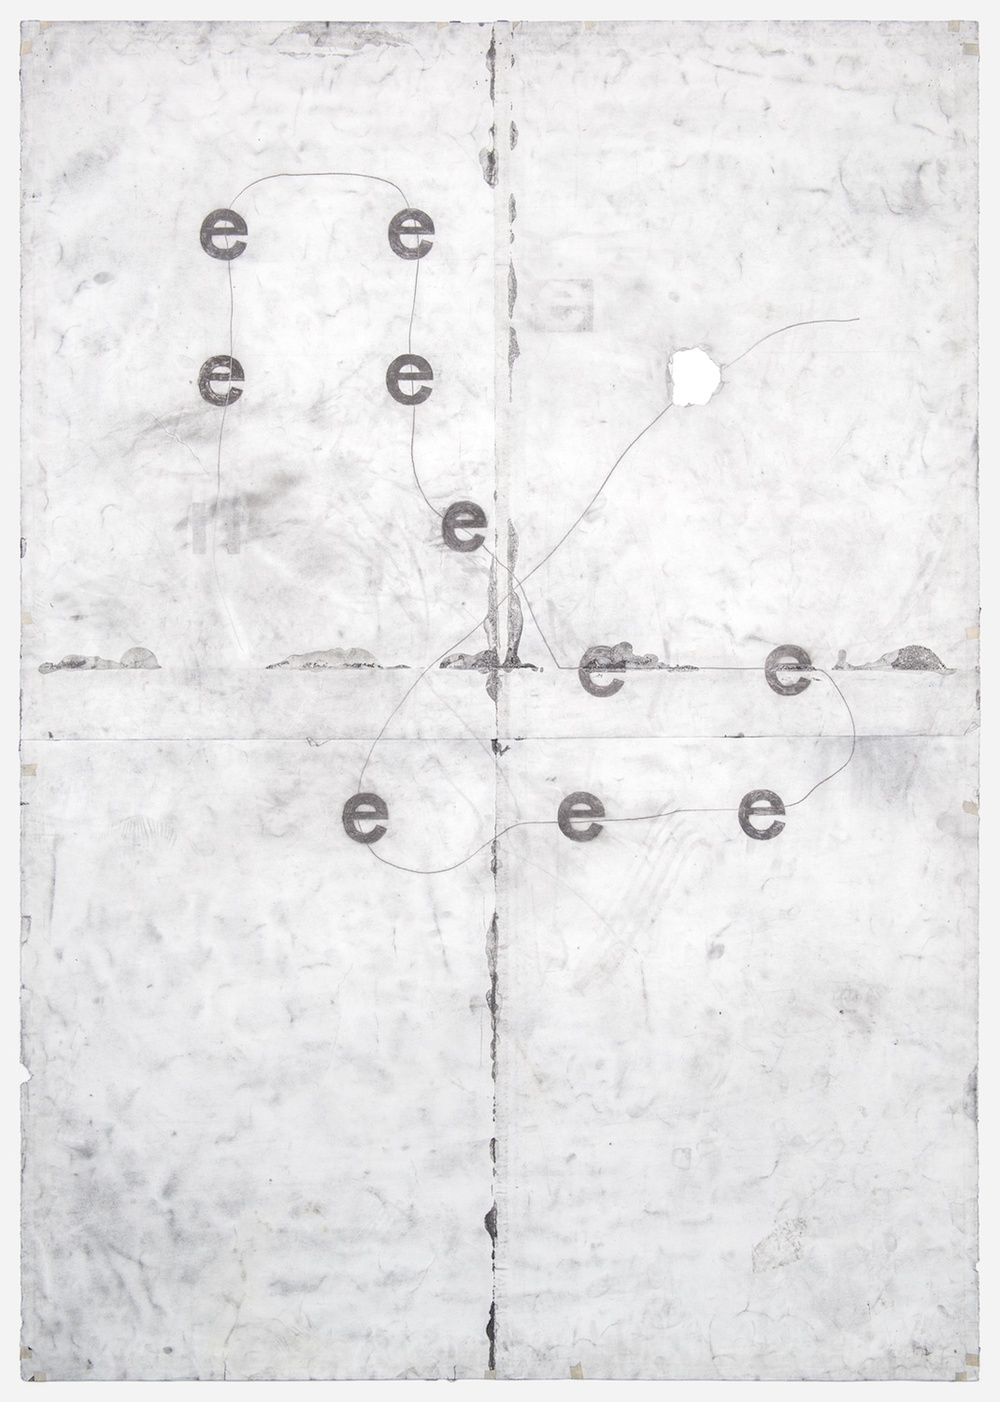 "Tony Lewis e e e e e e e e e e 2011 Pencil and powdered graphite on paper 84"" x 60"" TL030"